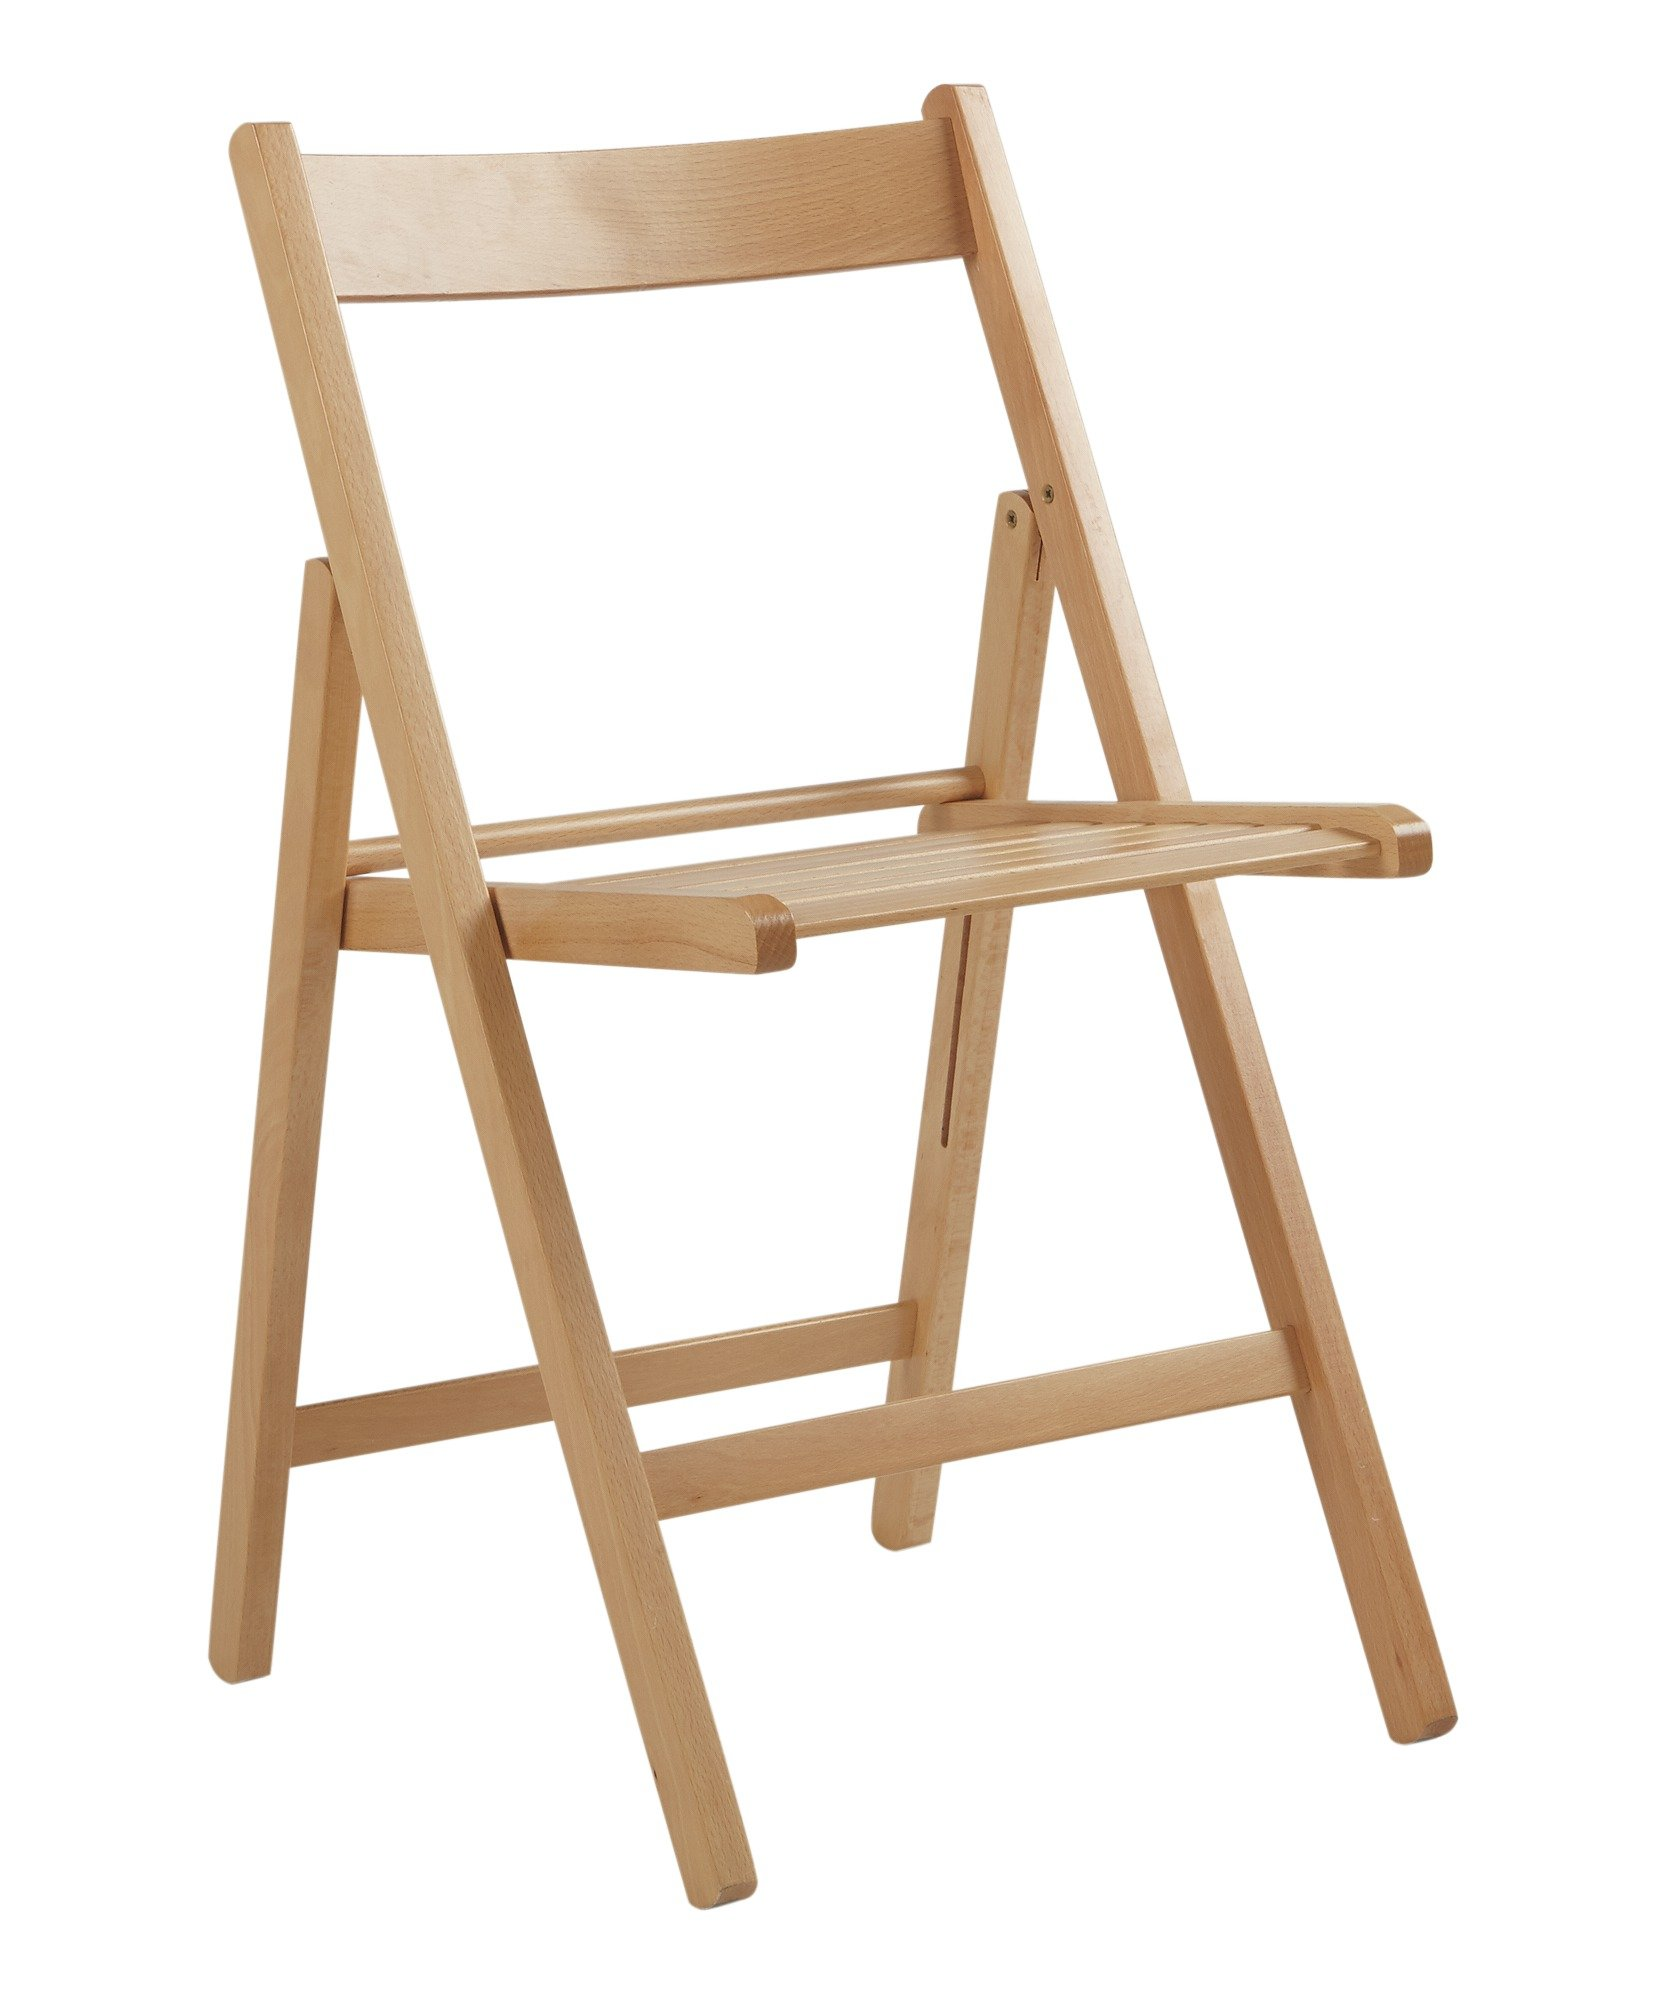 folding wooden chairs fisher price space saver high chair replacement cover buy argos home natural dining